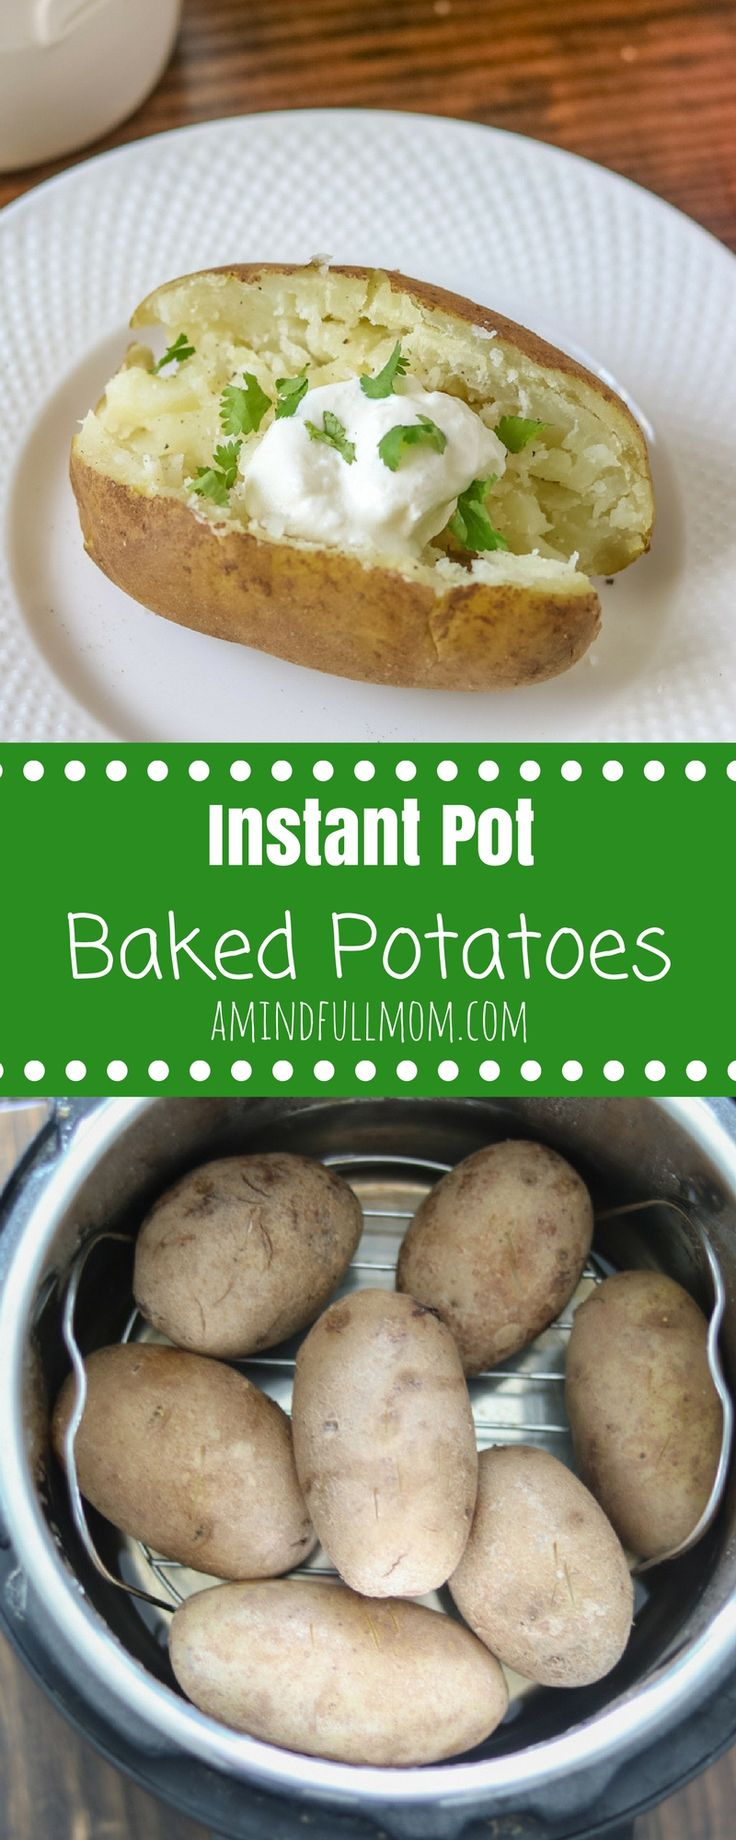 Instant Pot Baked Potatoes: Make fluffy, fork tender potatoes in the pressure cooker every singe time! Directions on how to cook potatoes in Instant Pot with troubleshooting tips. via @amindfullmom